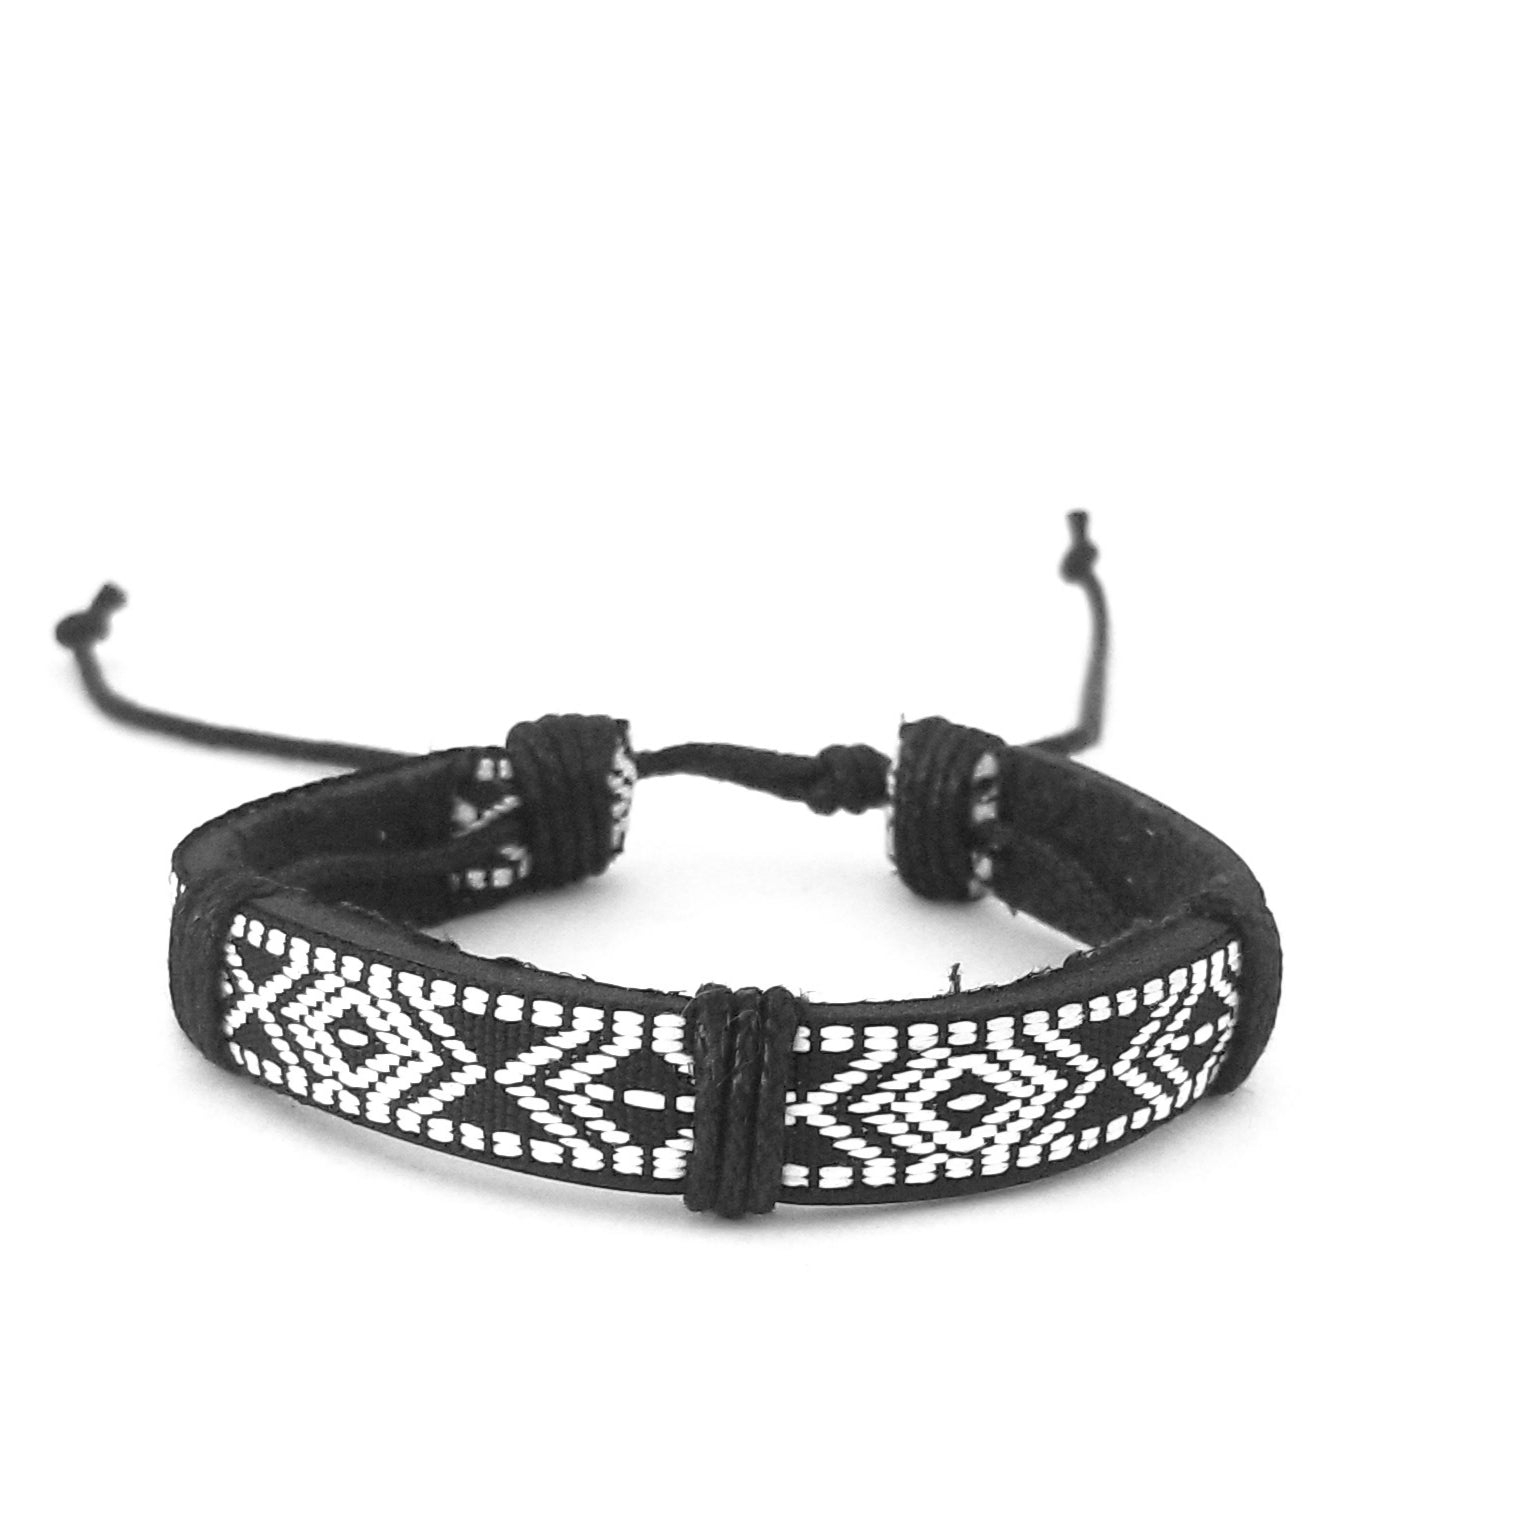 Black & White Patterned Bracelet